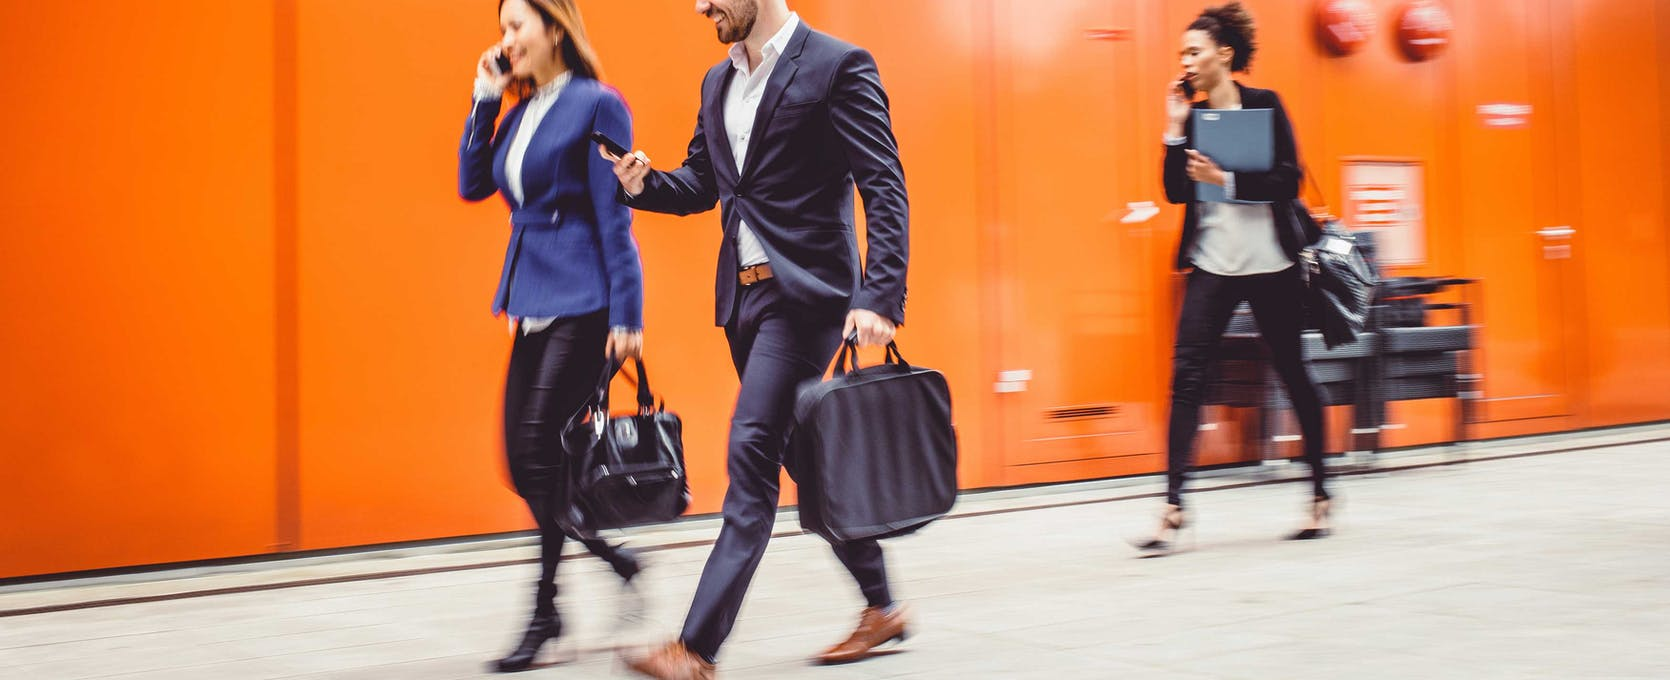 Young business professionals on their phones walking to a meeting